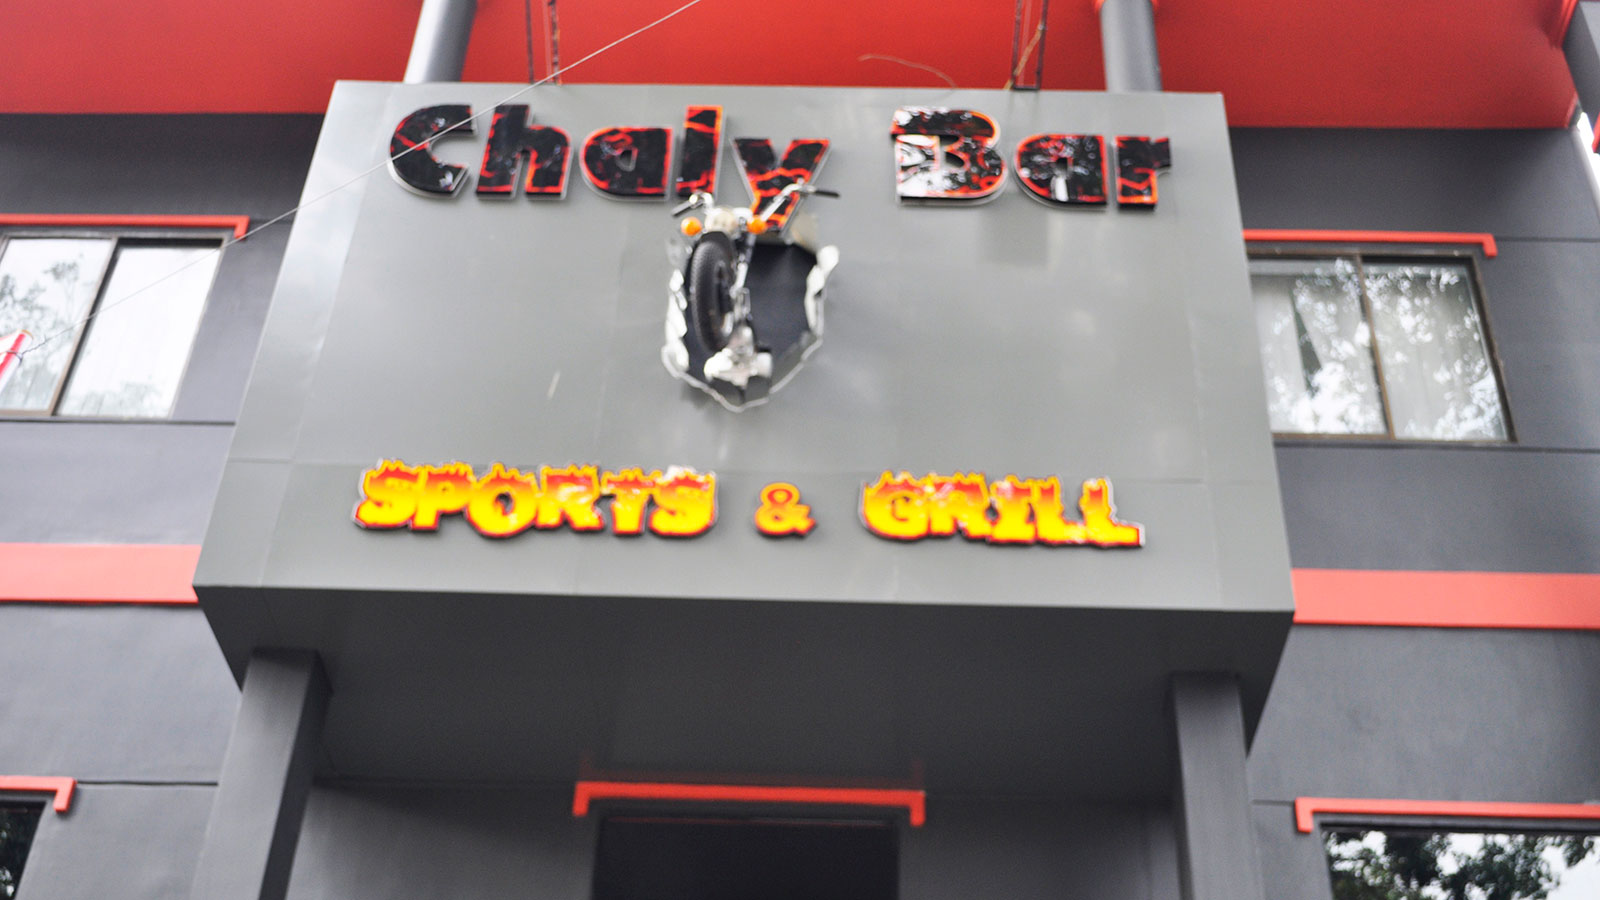 Chaly Bar Sport & Grill for westerners